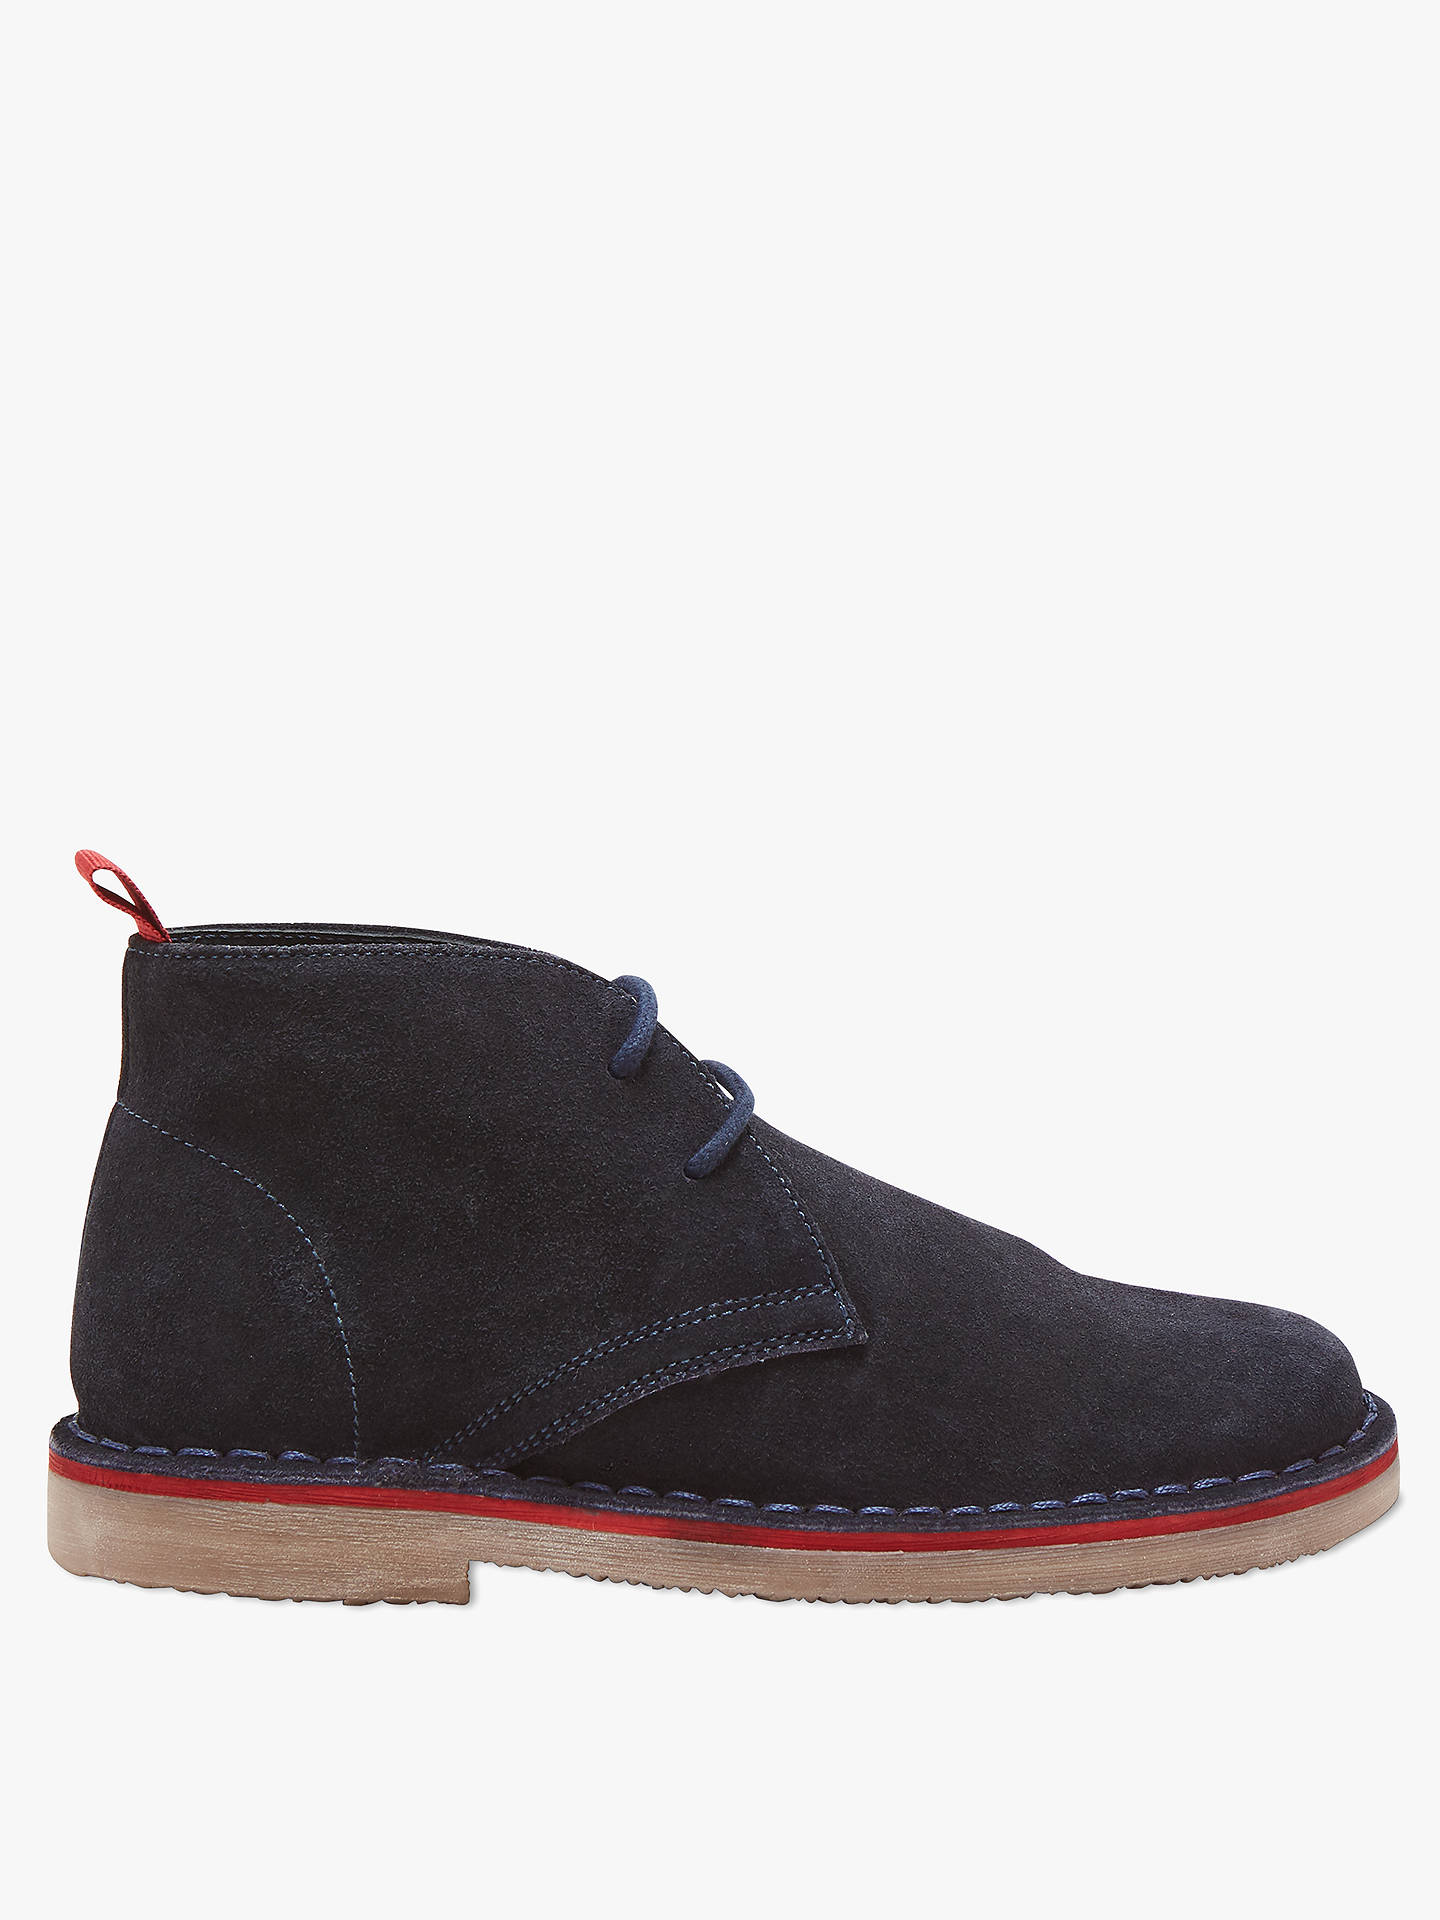 Buy John Lewis & Partners Children's Desert Lace Up Boots, Navy, 8 Jnr Online at johnlewis.com